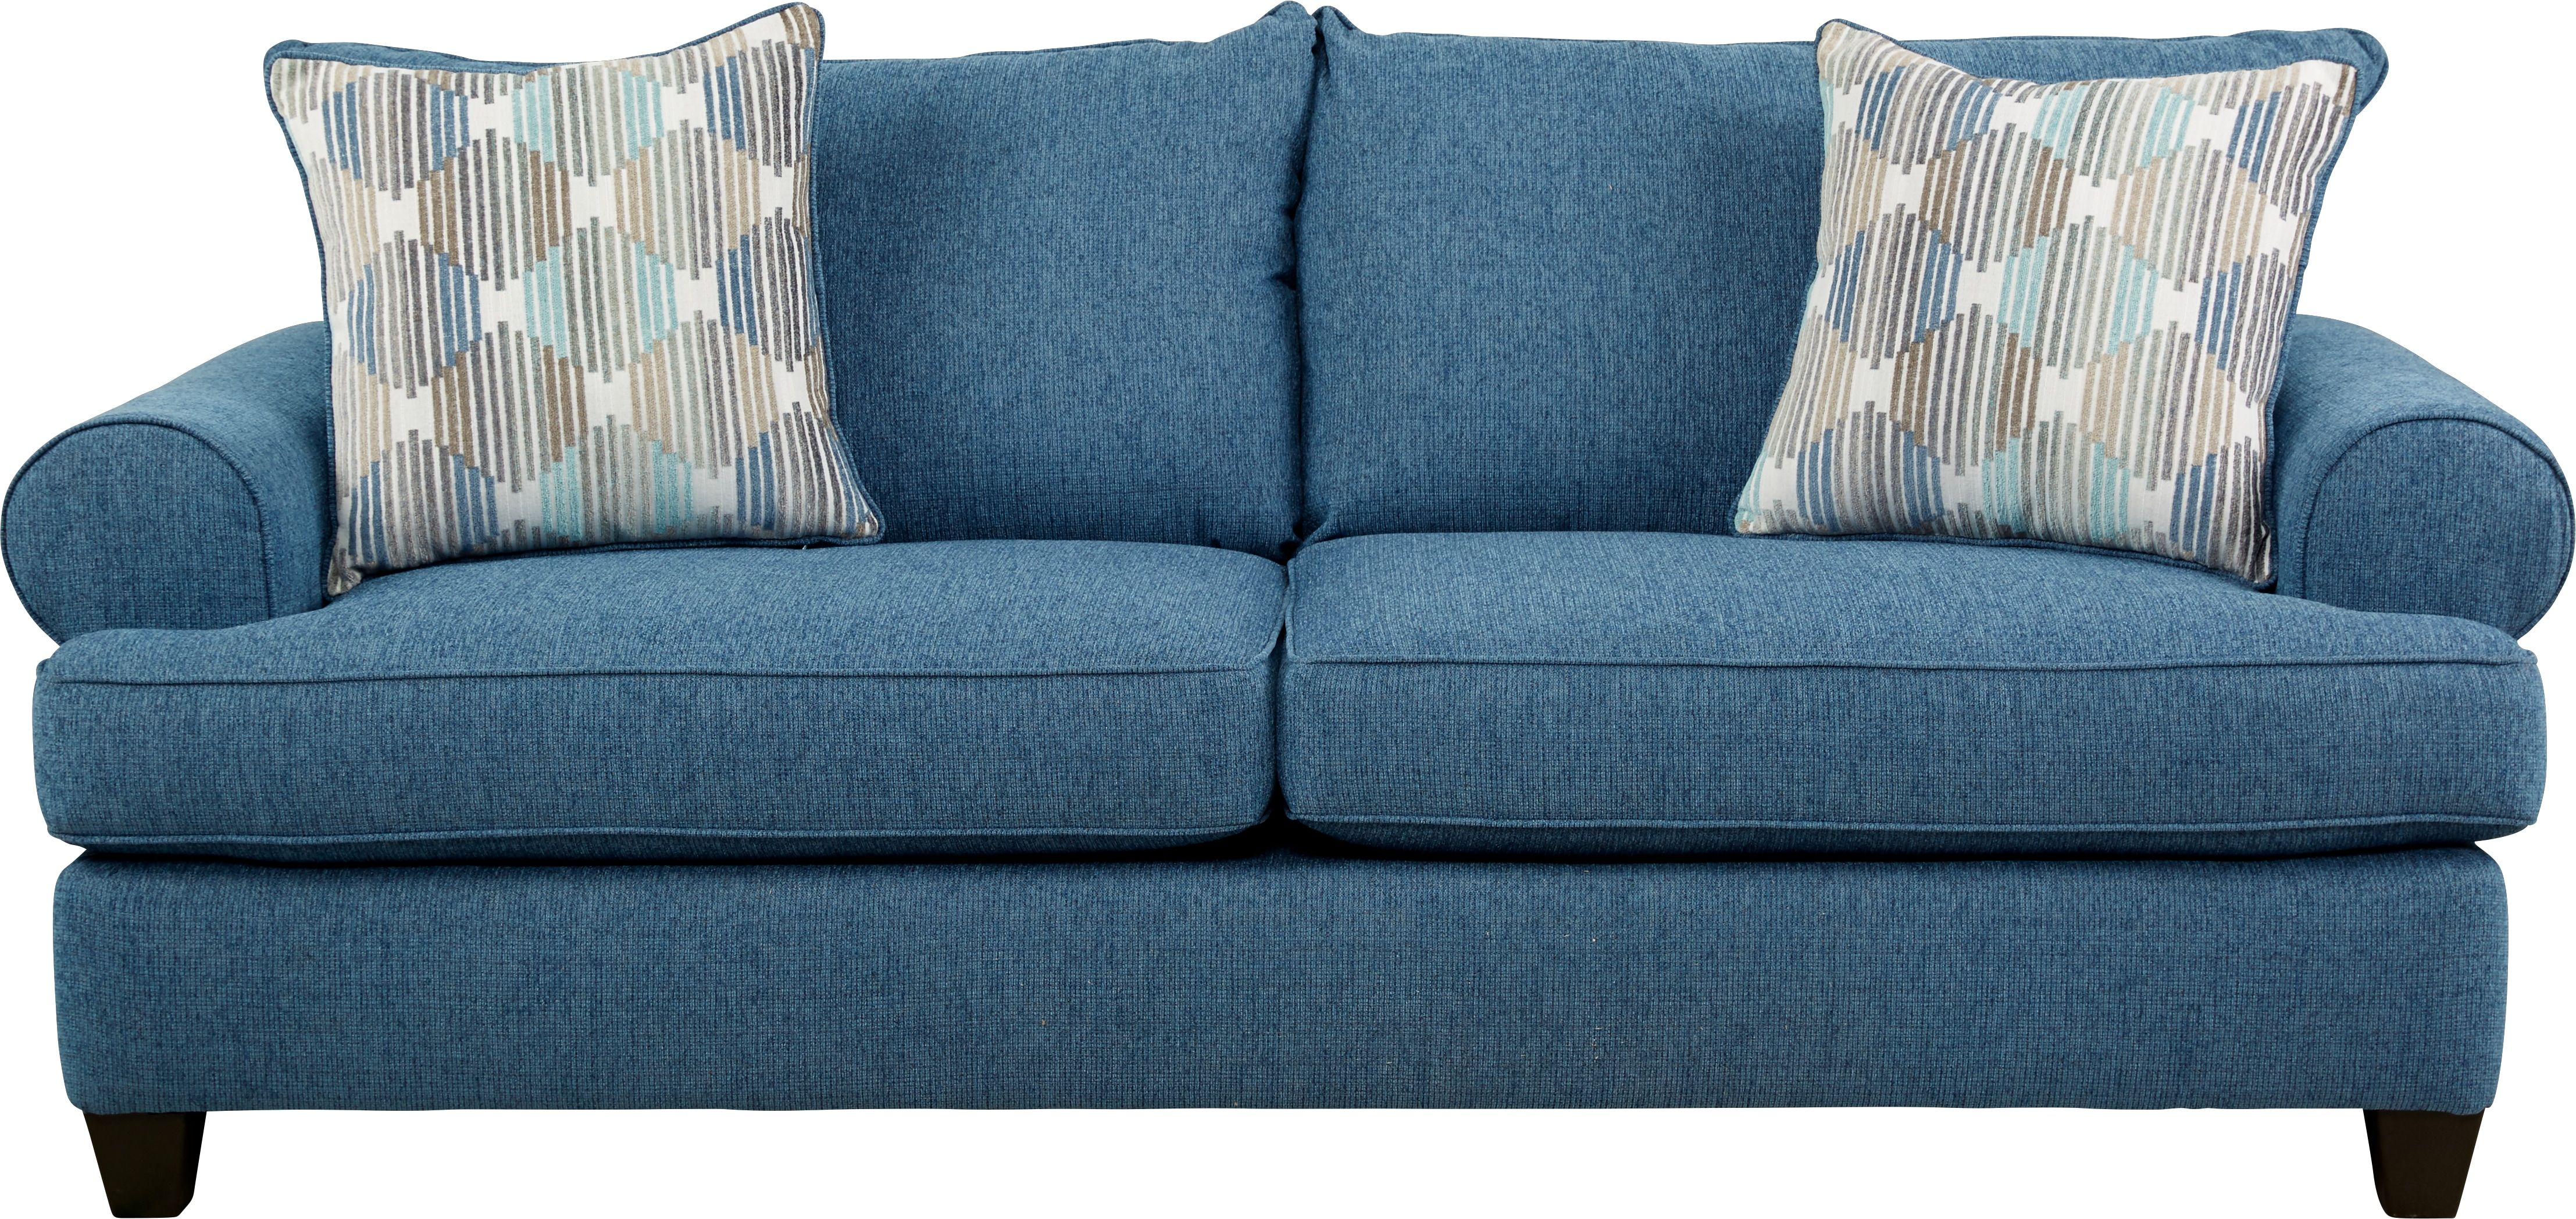 North Bay Chambray Sleeper Blue Leather Sofa Red Leather Sofa